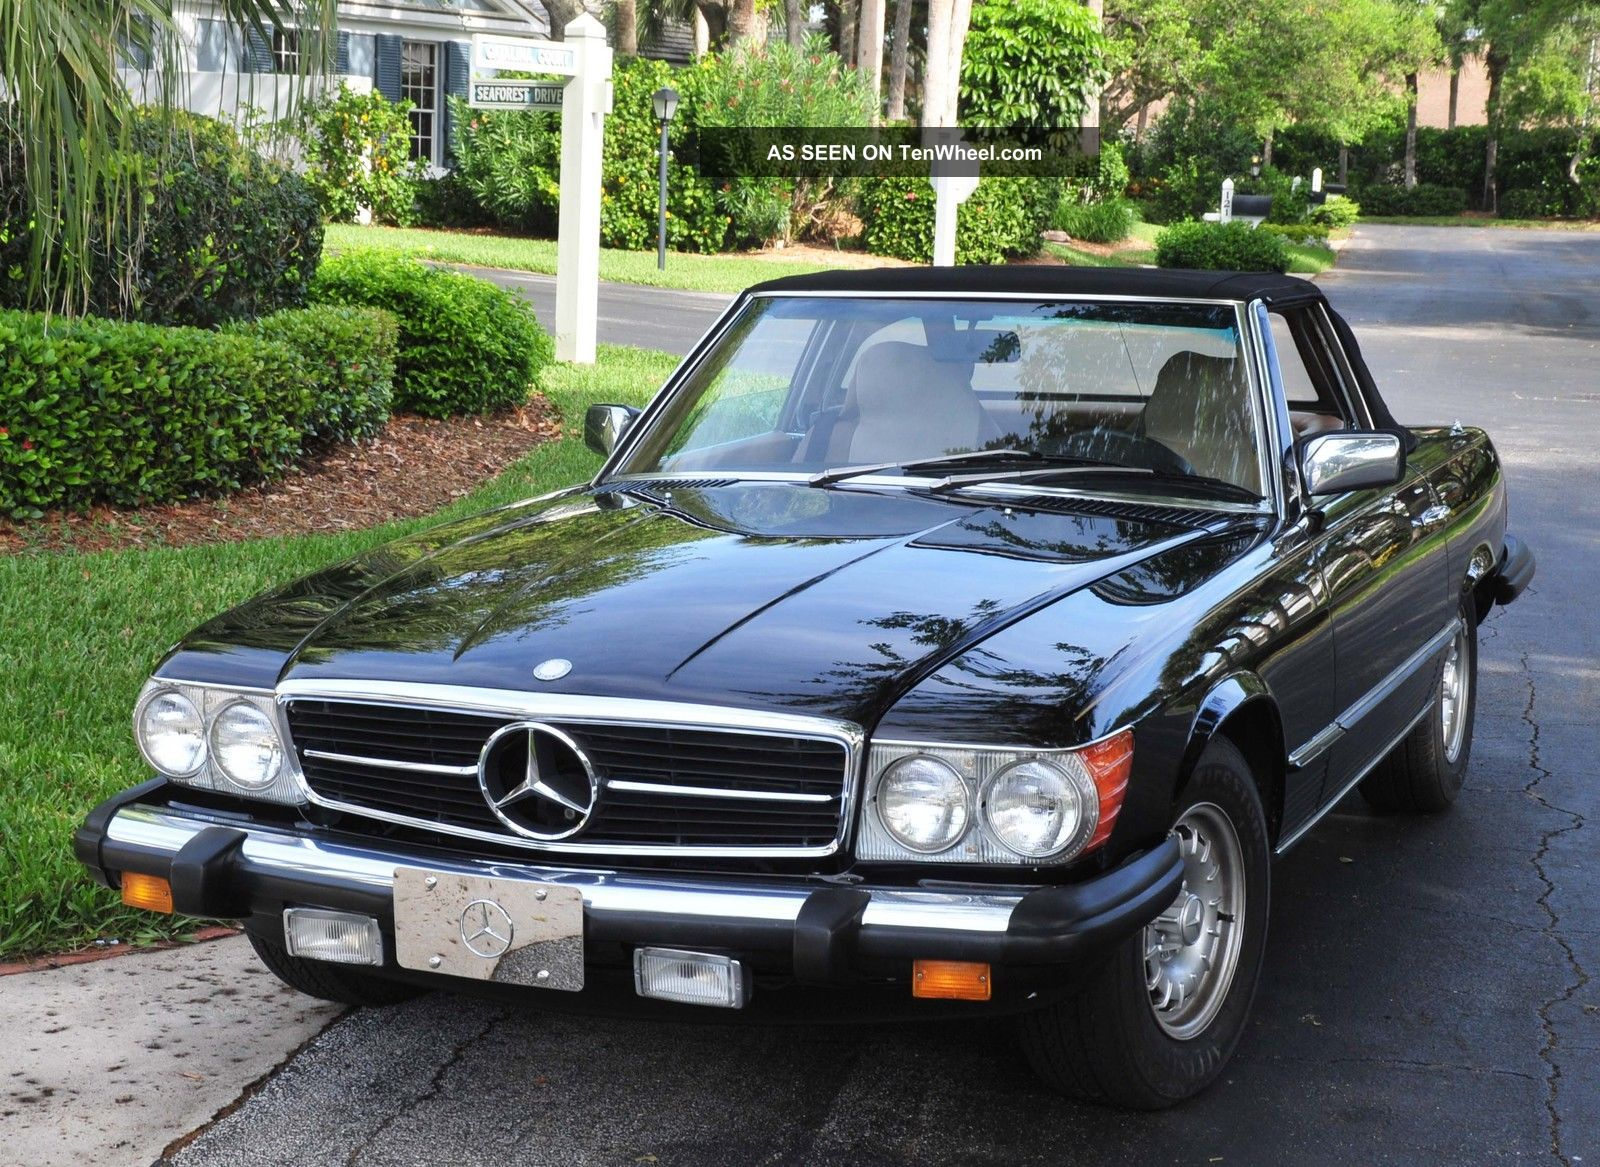 Mercedes Benz 1985 380sl Black Beauty Roadster,  Loaded,  Show Winner SL-Class photo